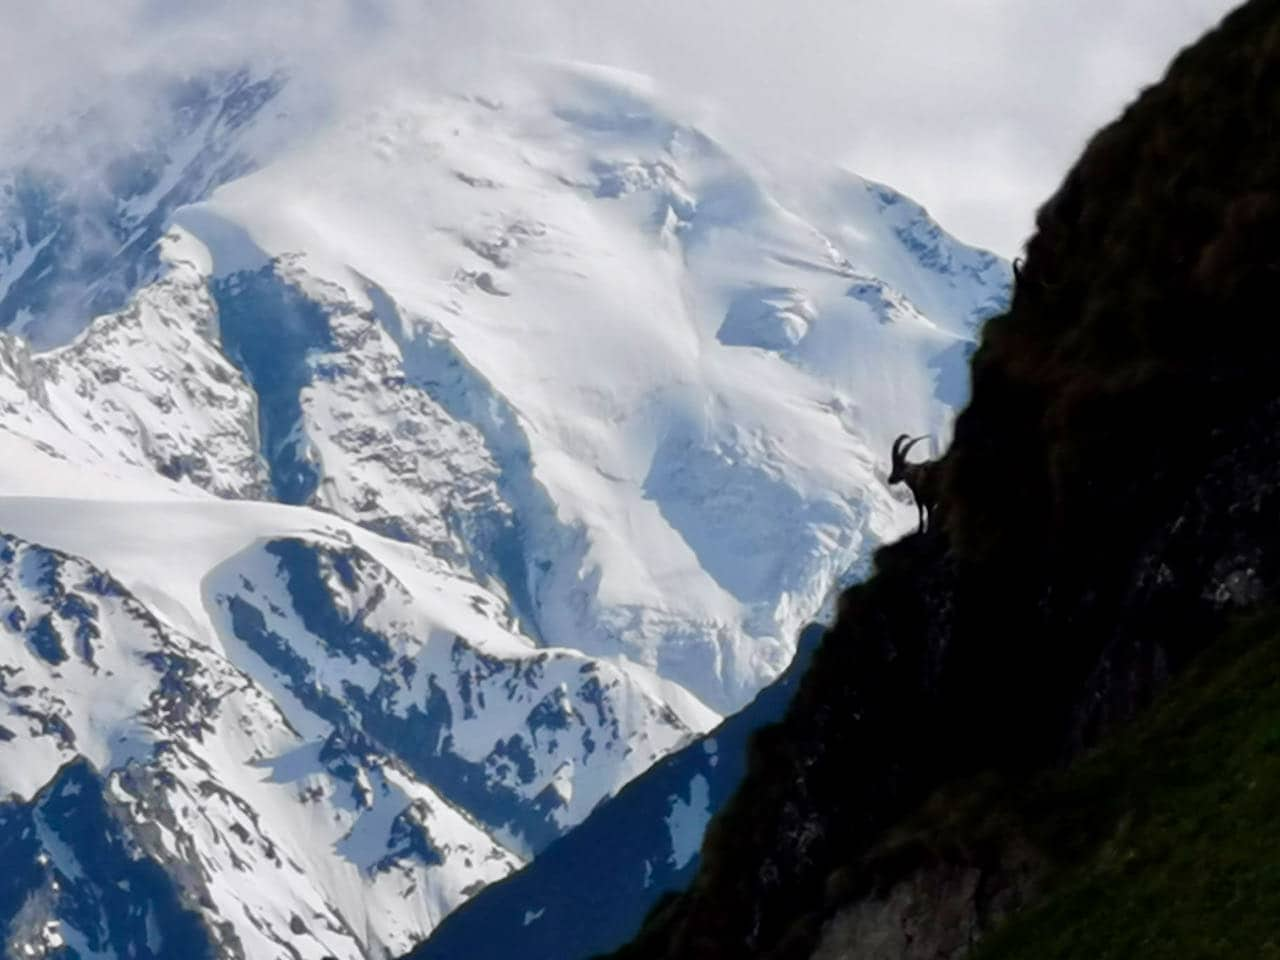 Contrast view of an ibex from Lac de Louvie